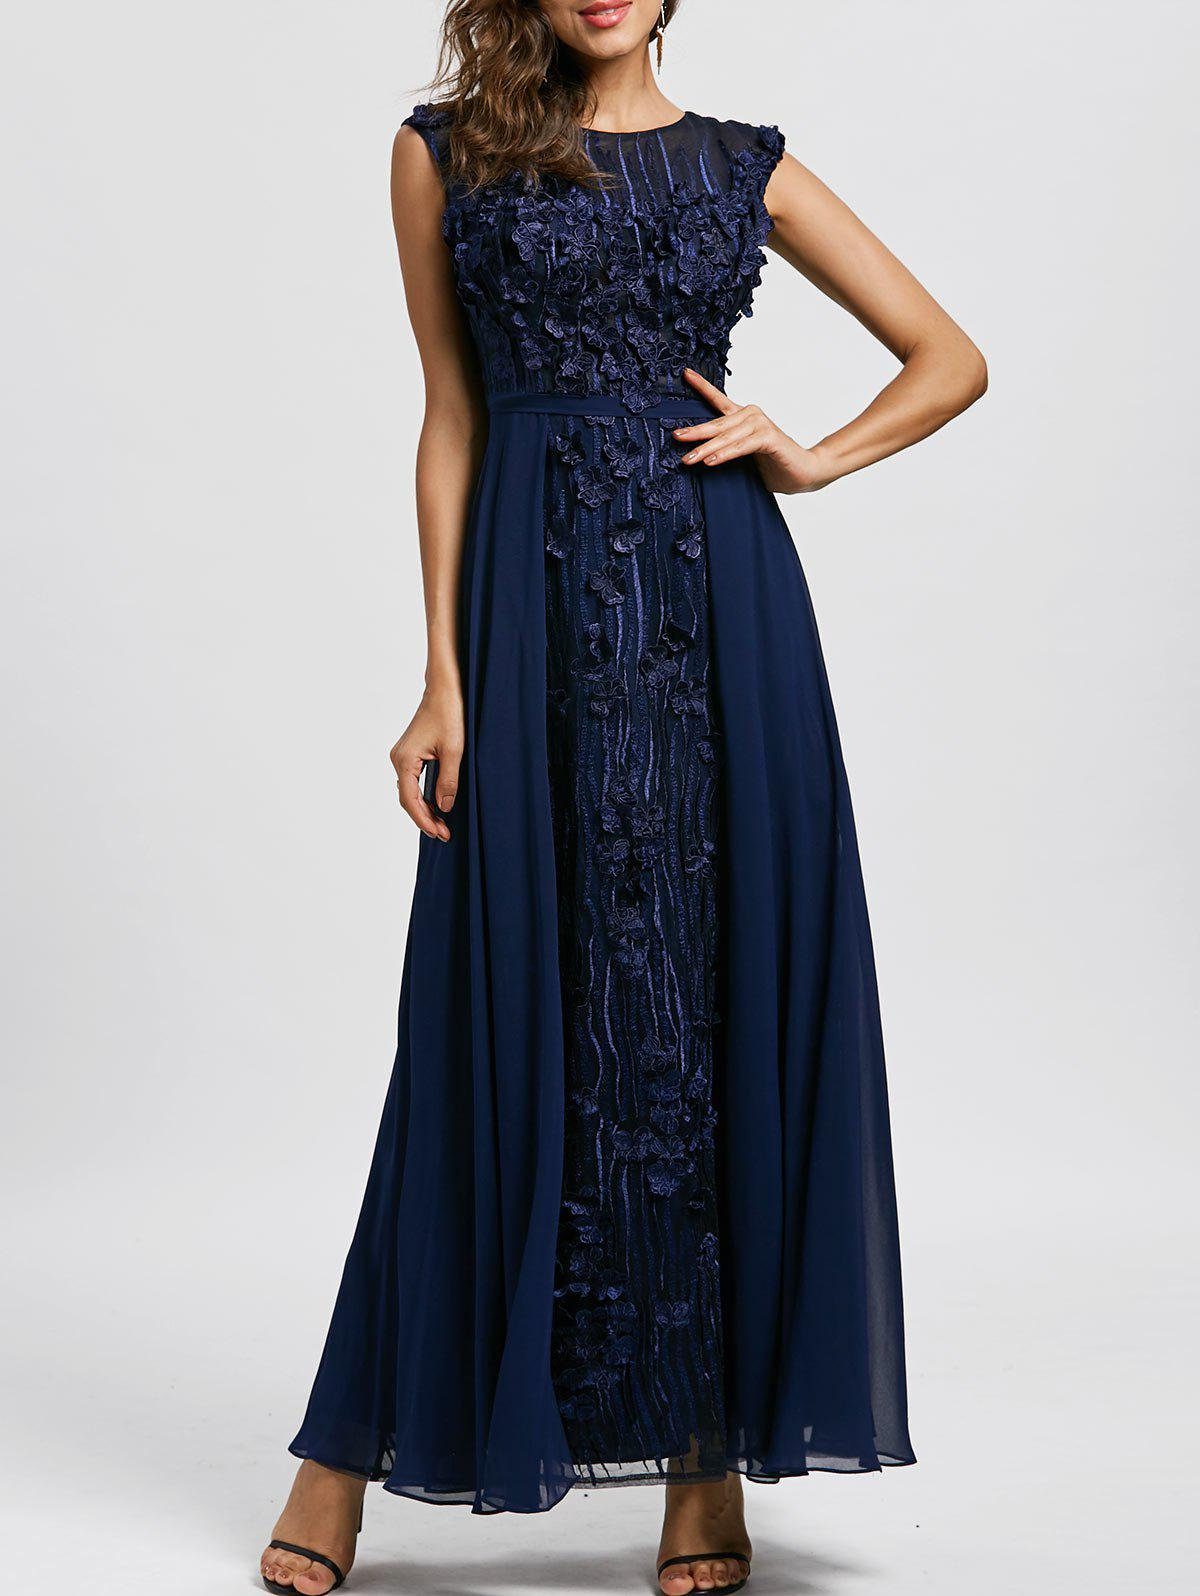 Hot Floral Applique Sleeveless Maxi Evening Dress